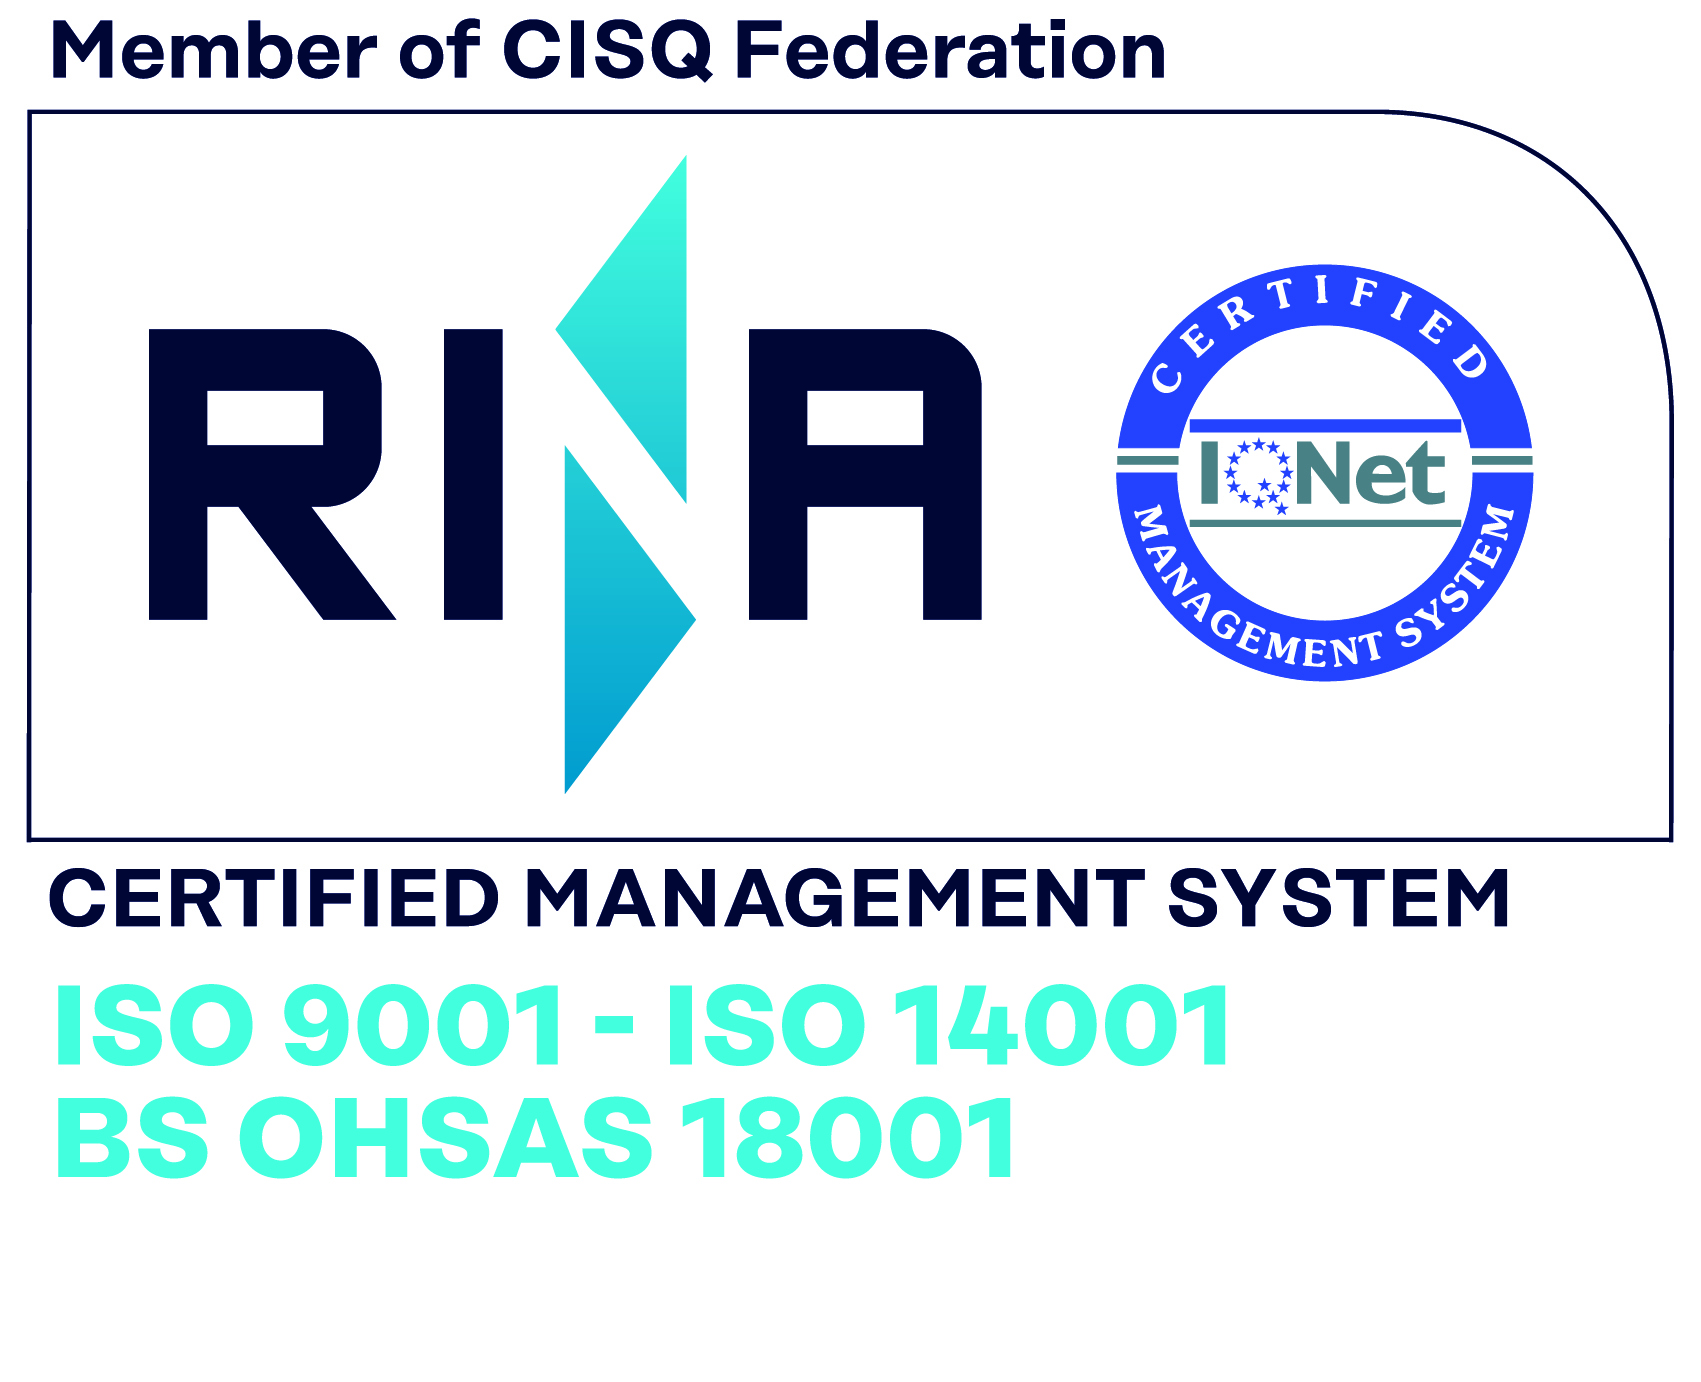 iso-9001-iso-14001-bs-ohsas-18001_col